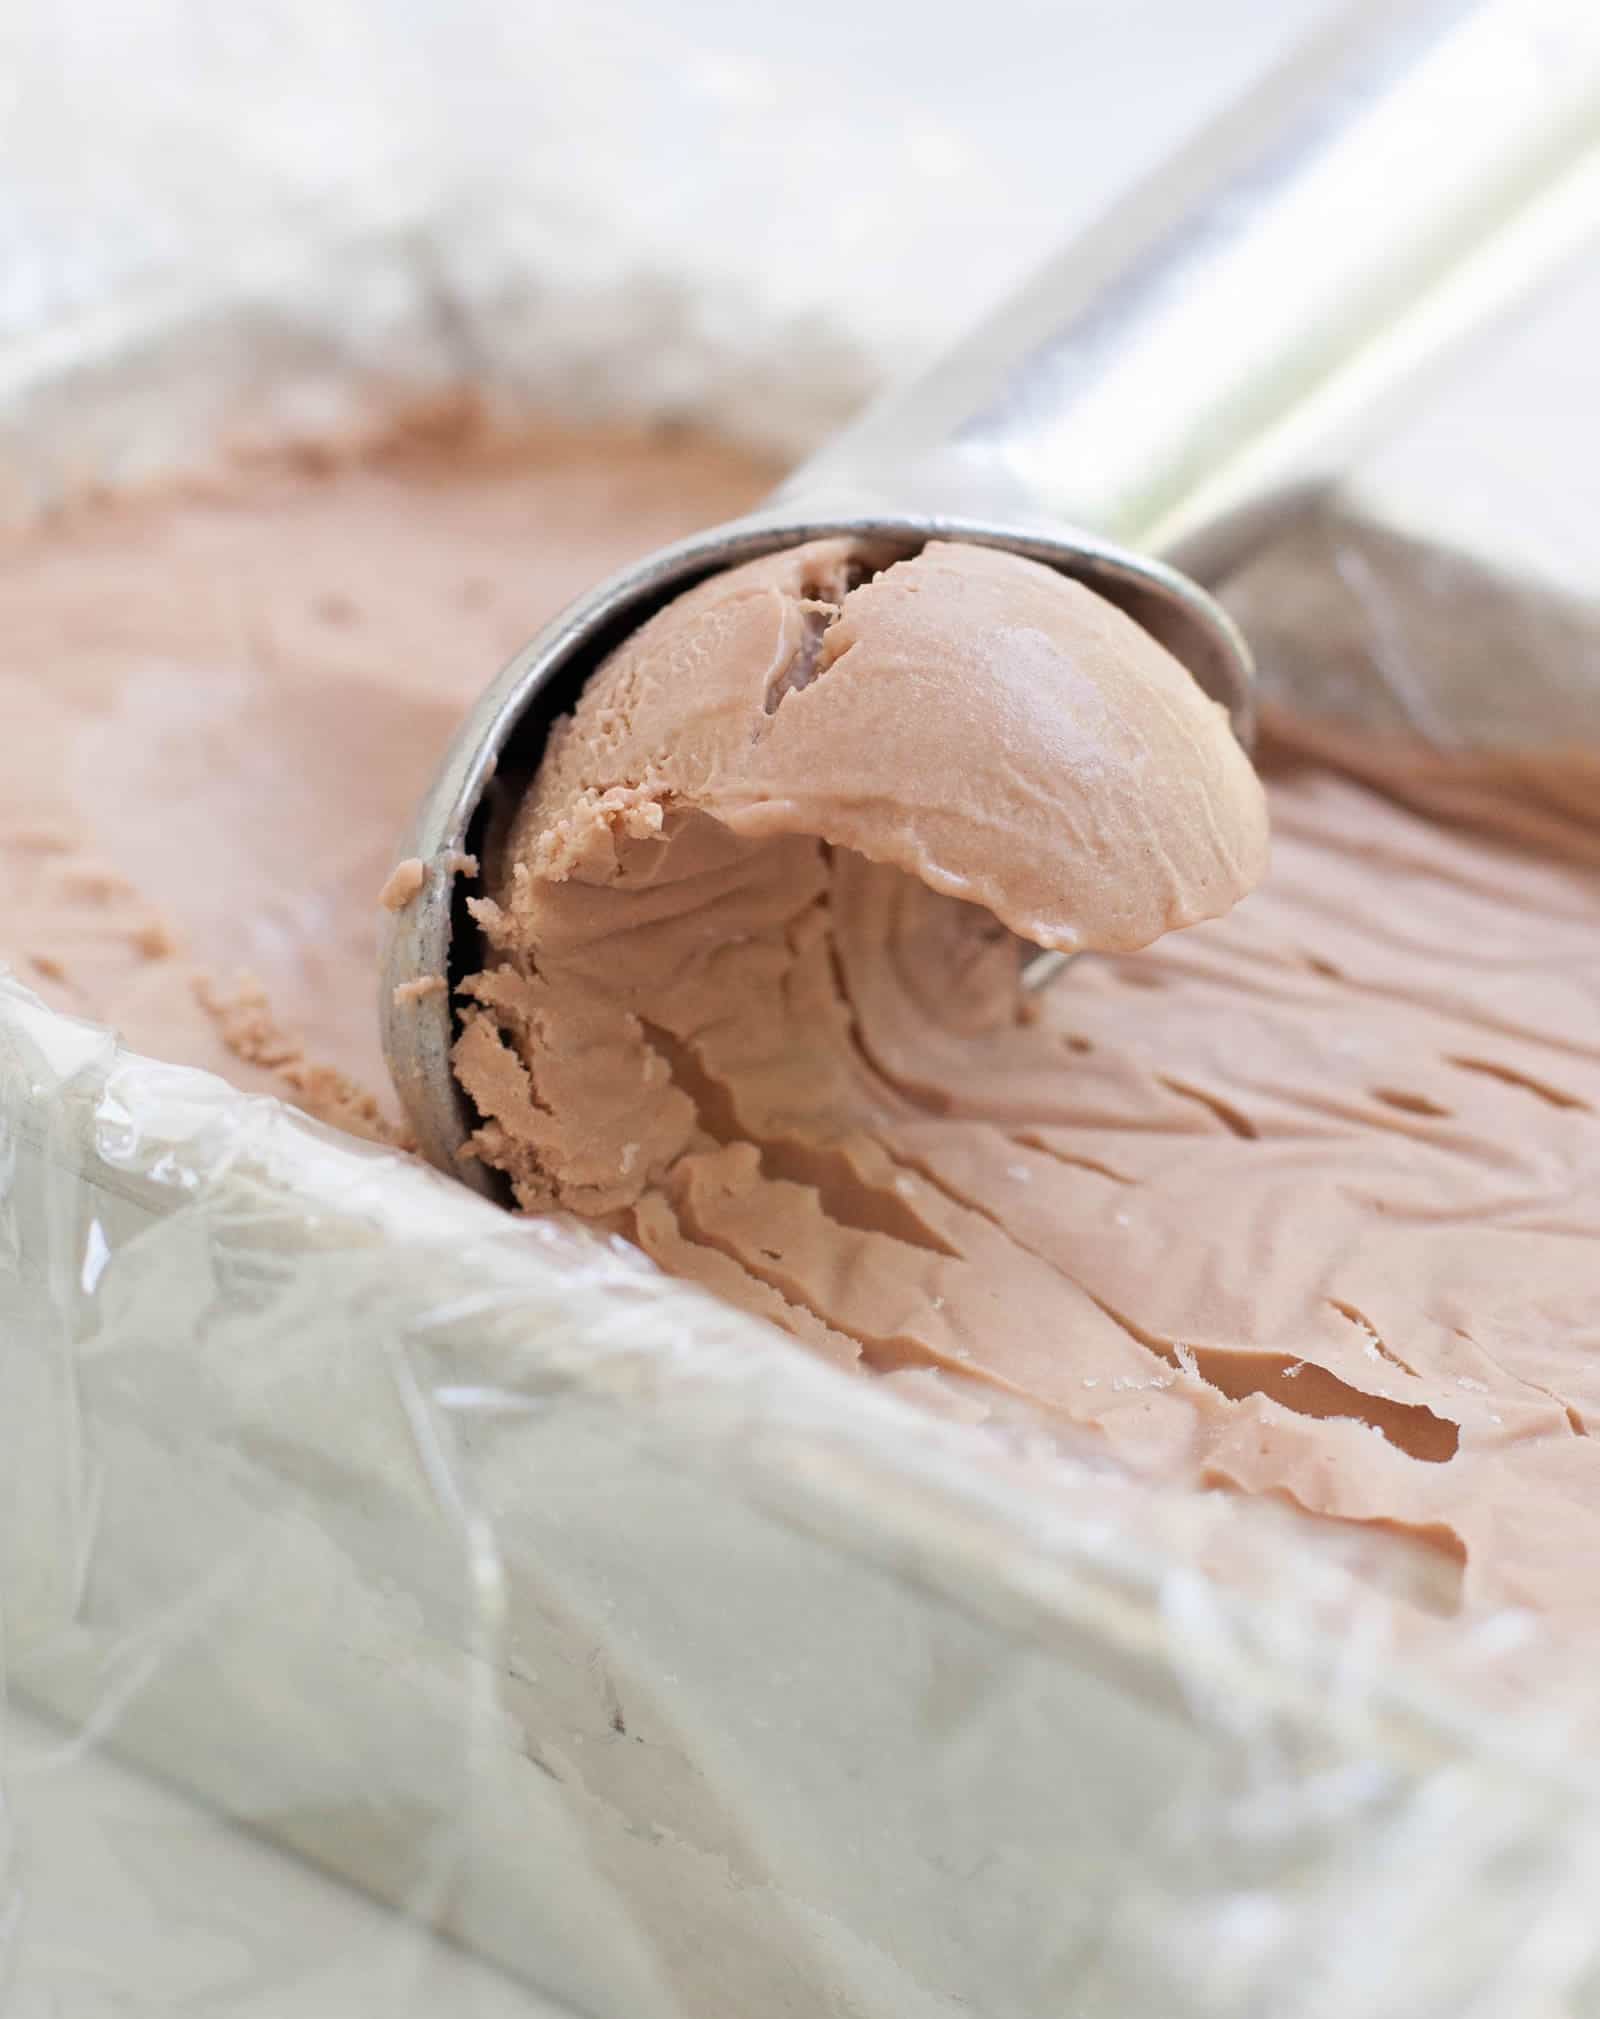 No Churn Nutella Cheesecake Ice Cream. A NEW kind of no churn ice cream made with whipped cream and cream cheese! Super rich, creamy and delicious!